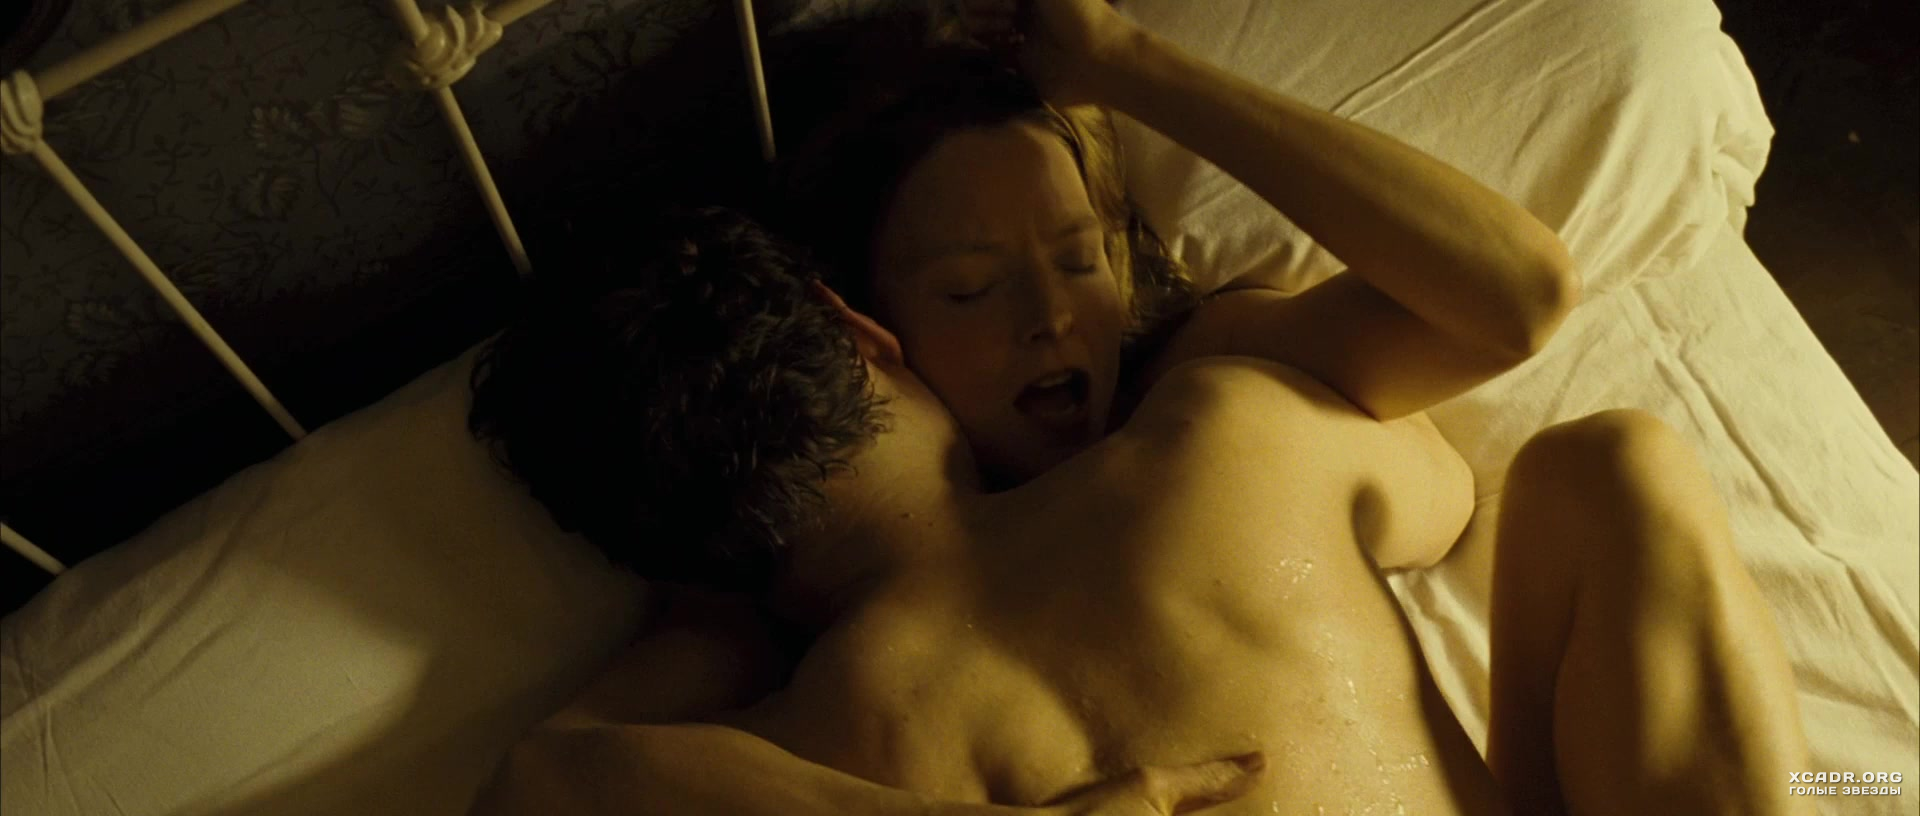 jodie-foster-nude-movies